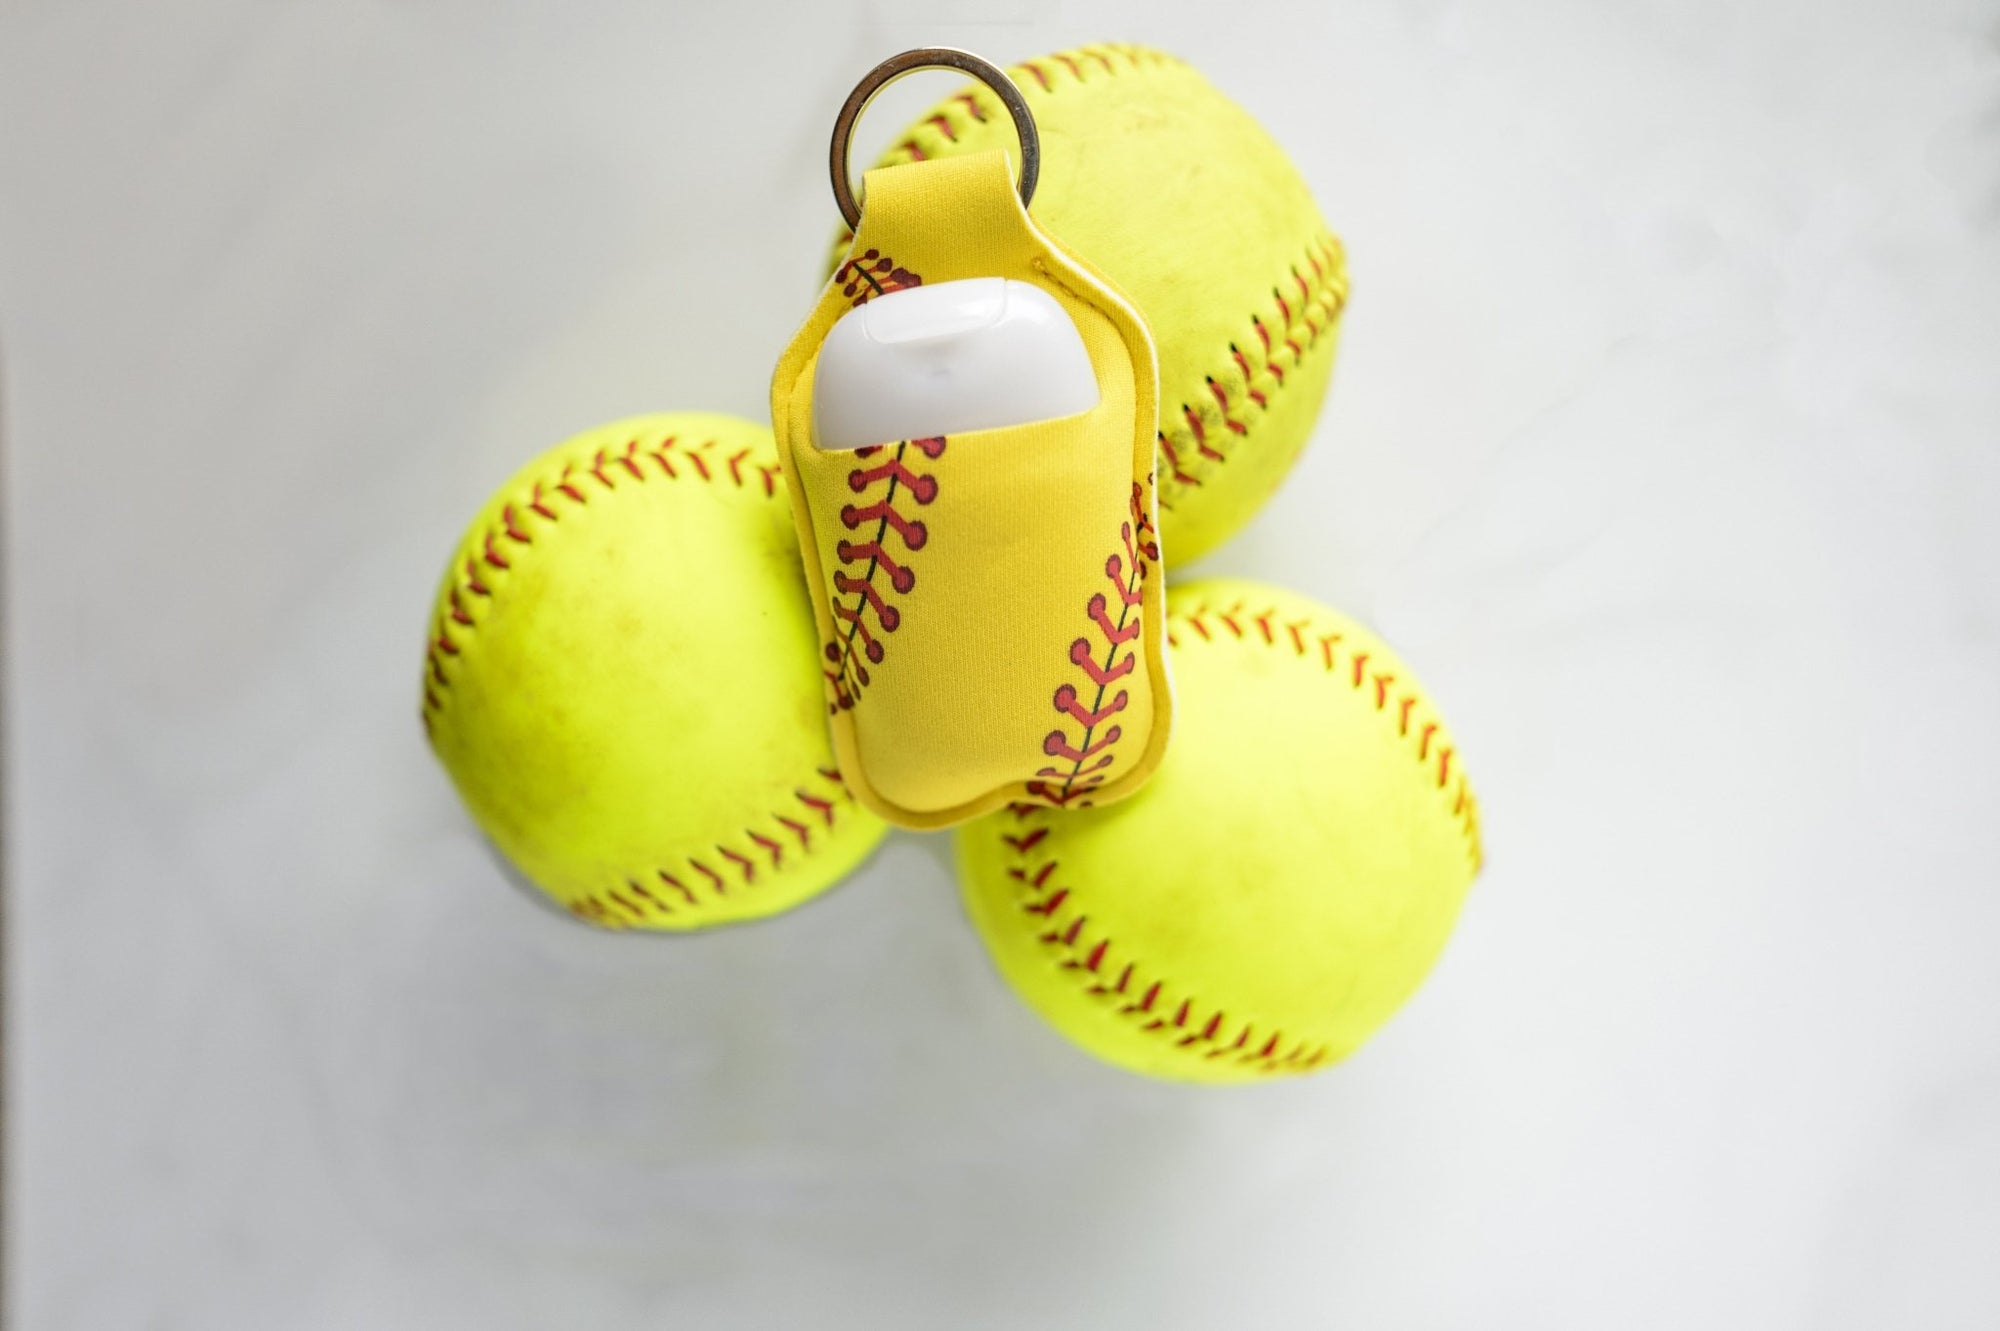 Softball Hand Sanitizer Holder for Backpack Kids Travel Size Keychain - Daisy Lane Company